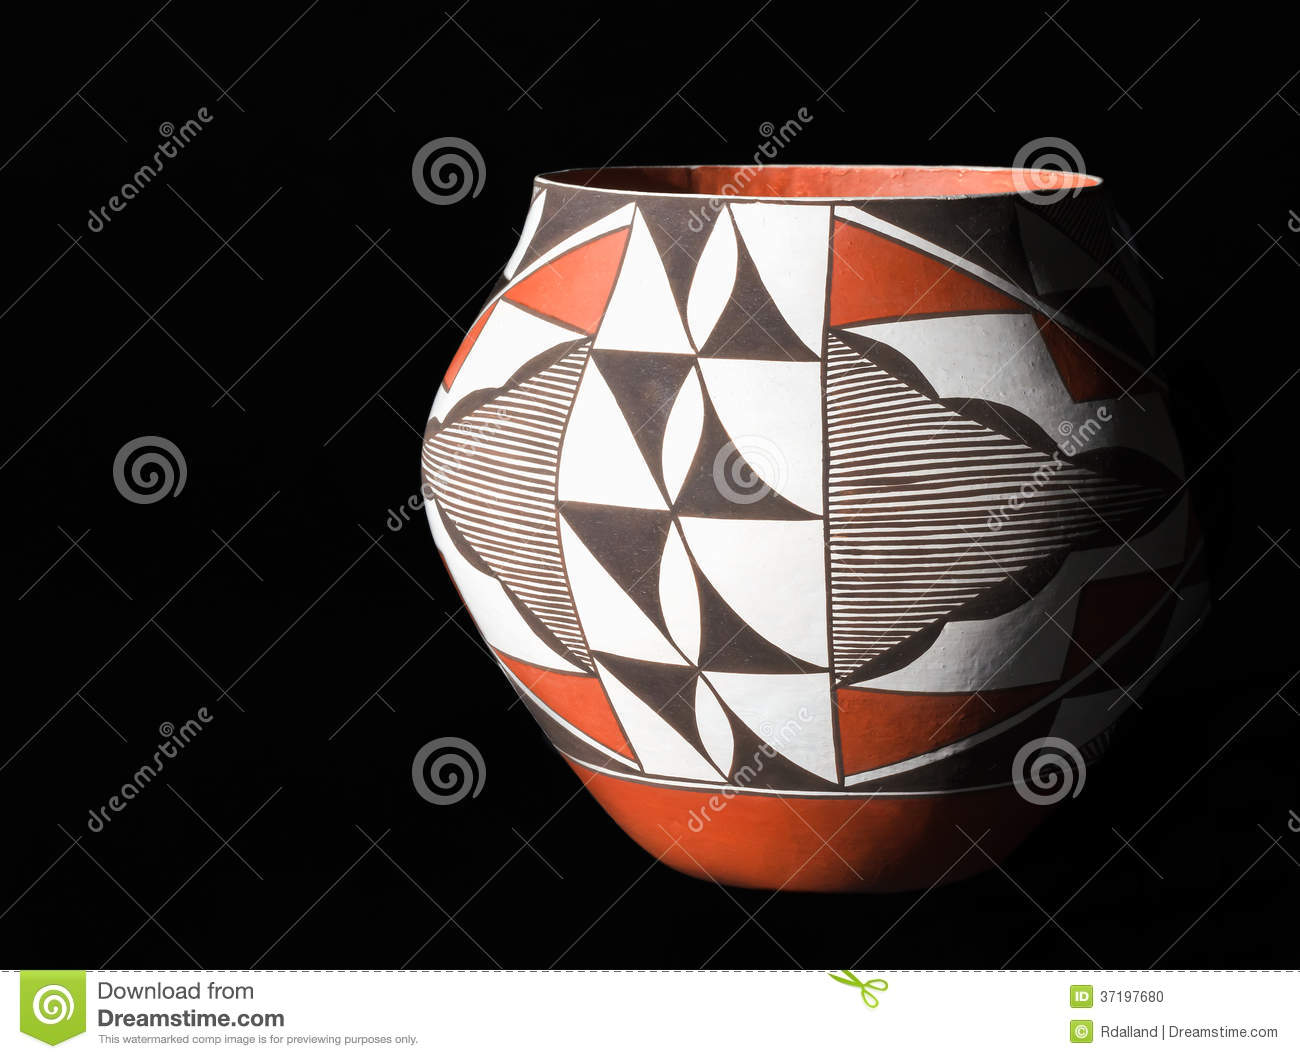 404 American Native Pottery Photos Free Royalty Free Stock Photos From Dreamstime,Industrial Small Modern Office Design